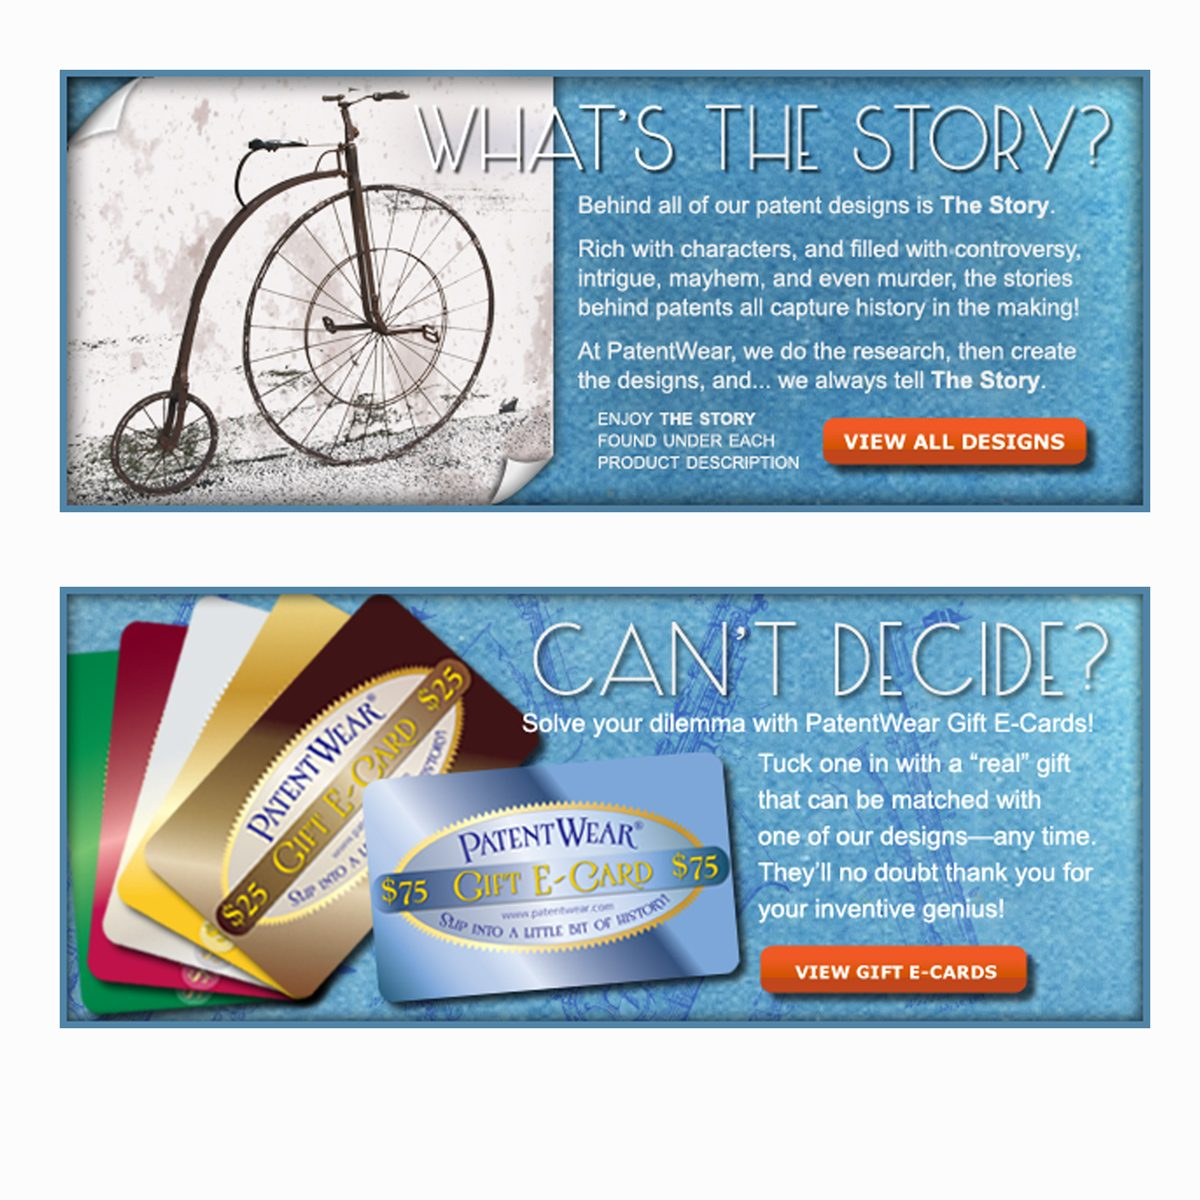 Website banners for PatentWear.com